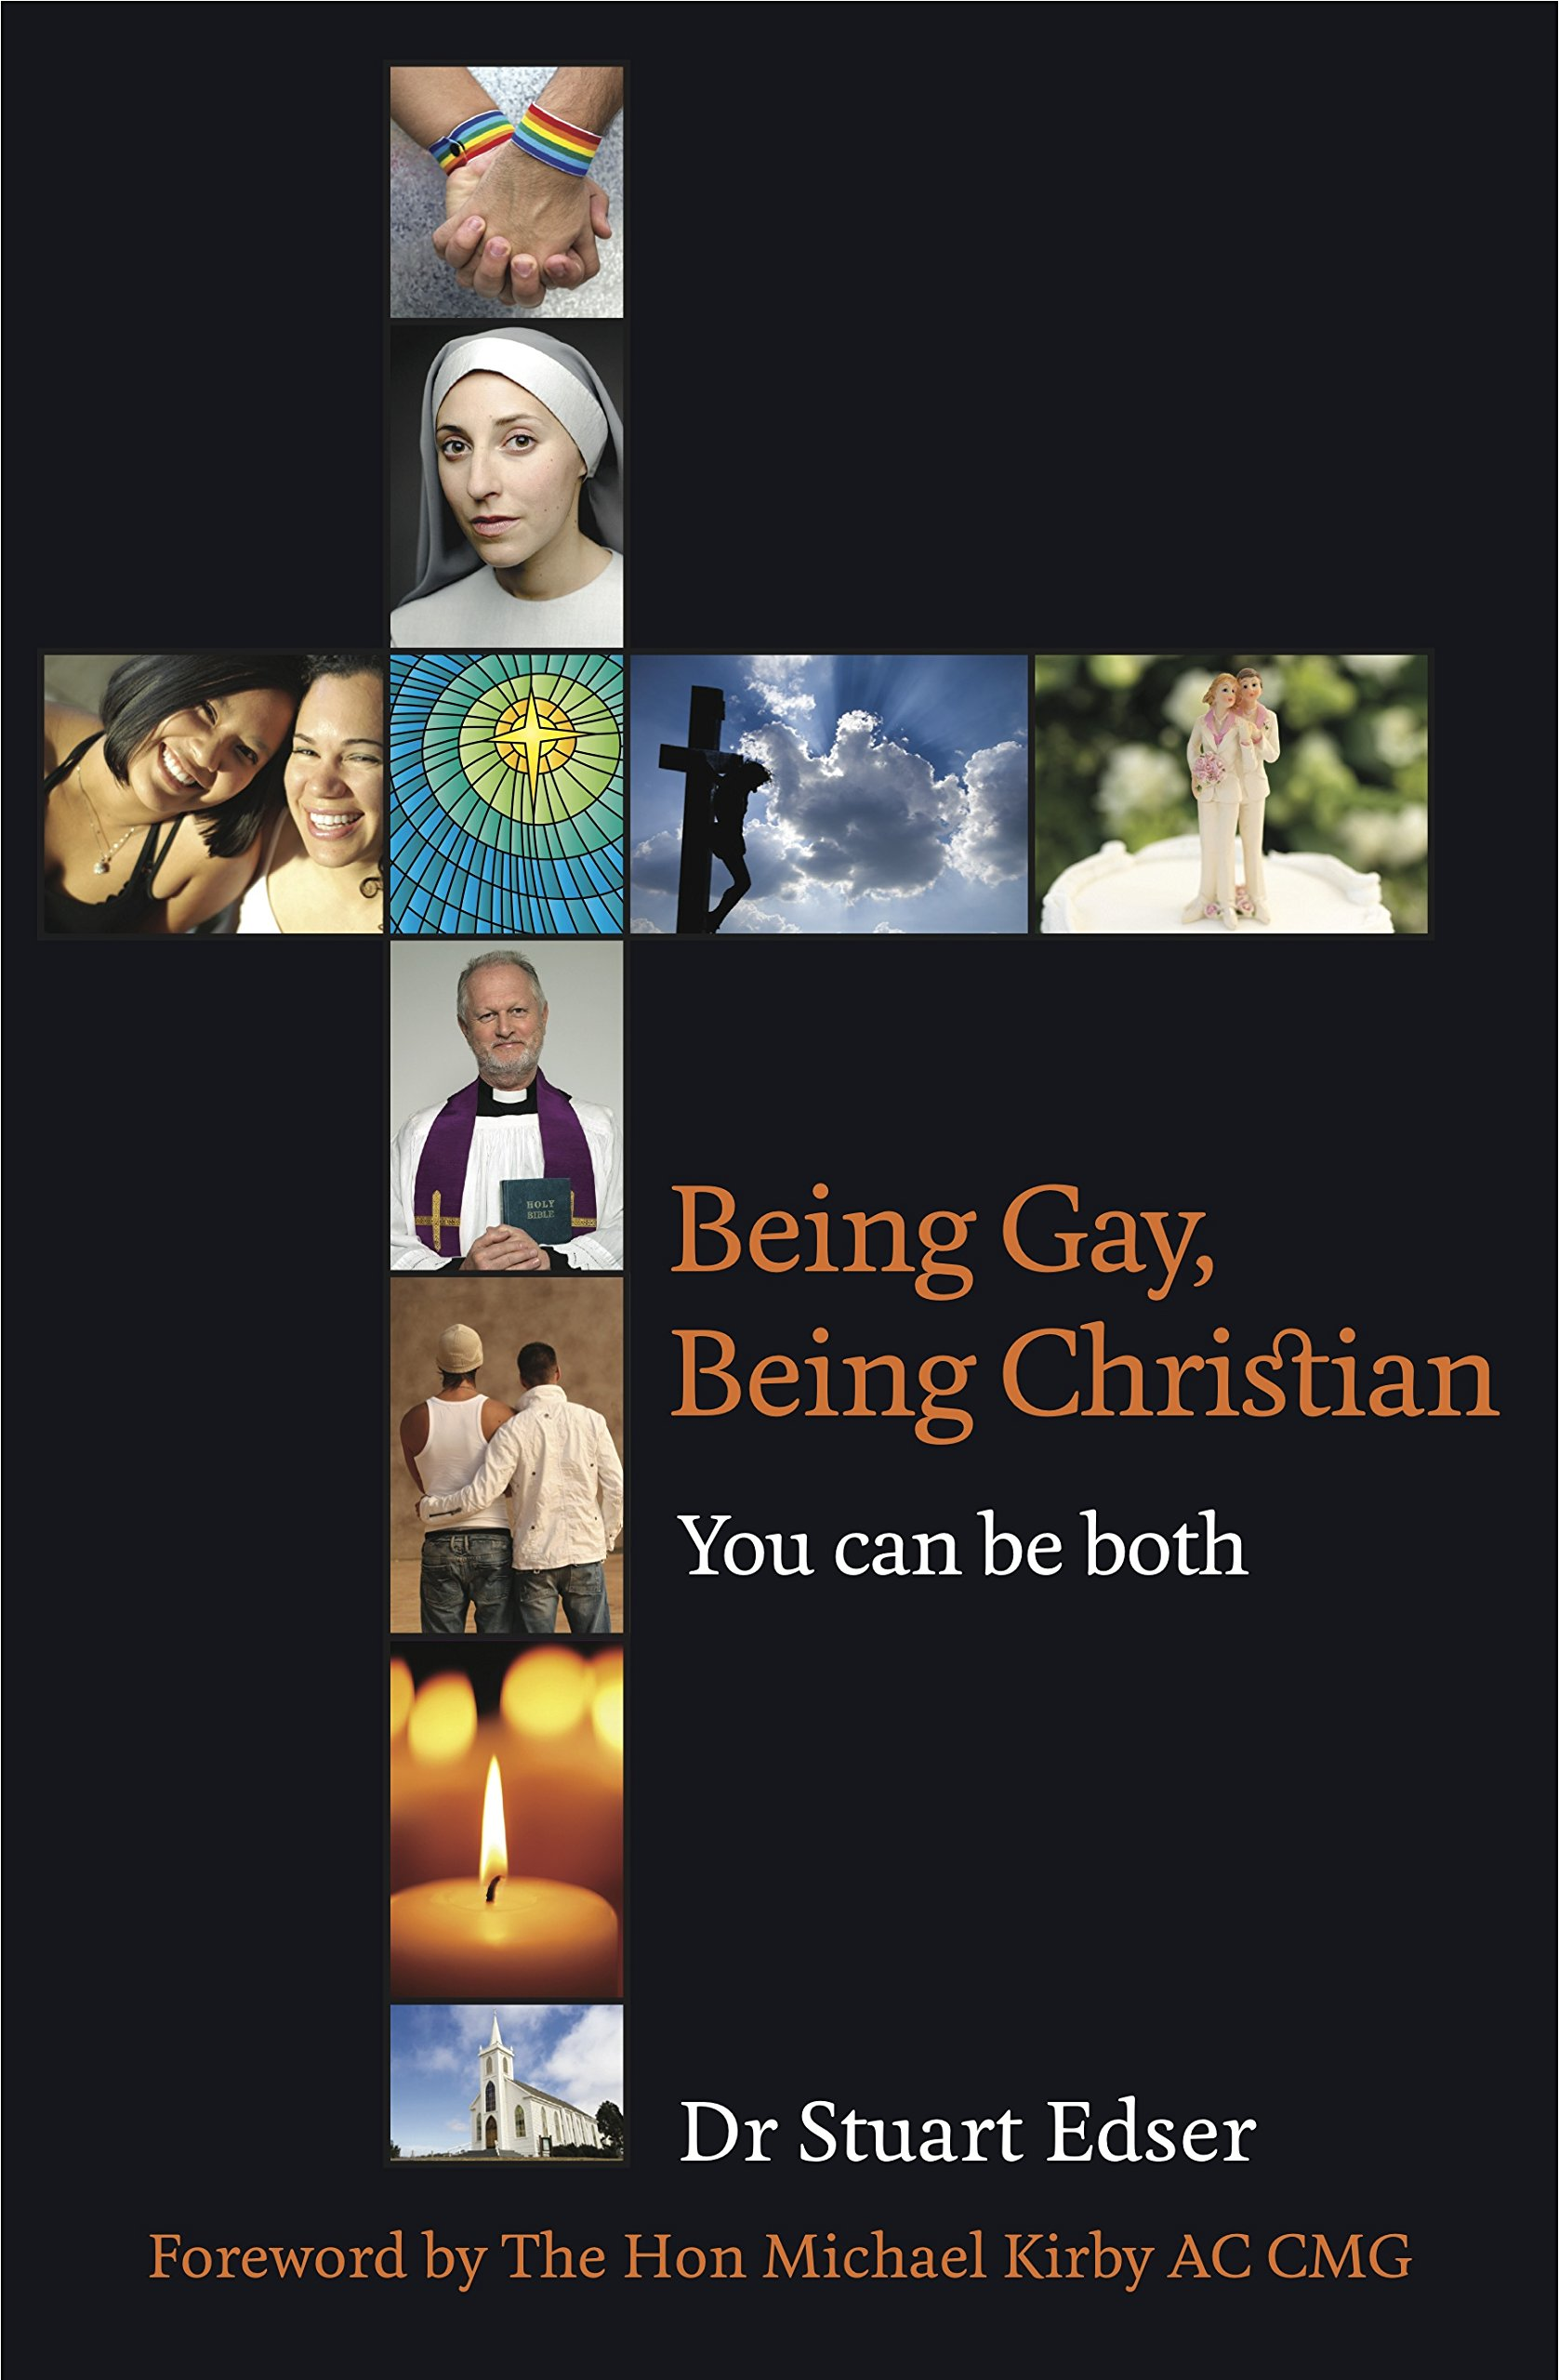 Being Gay, Being Christian - Dr Stuart Edser